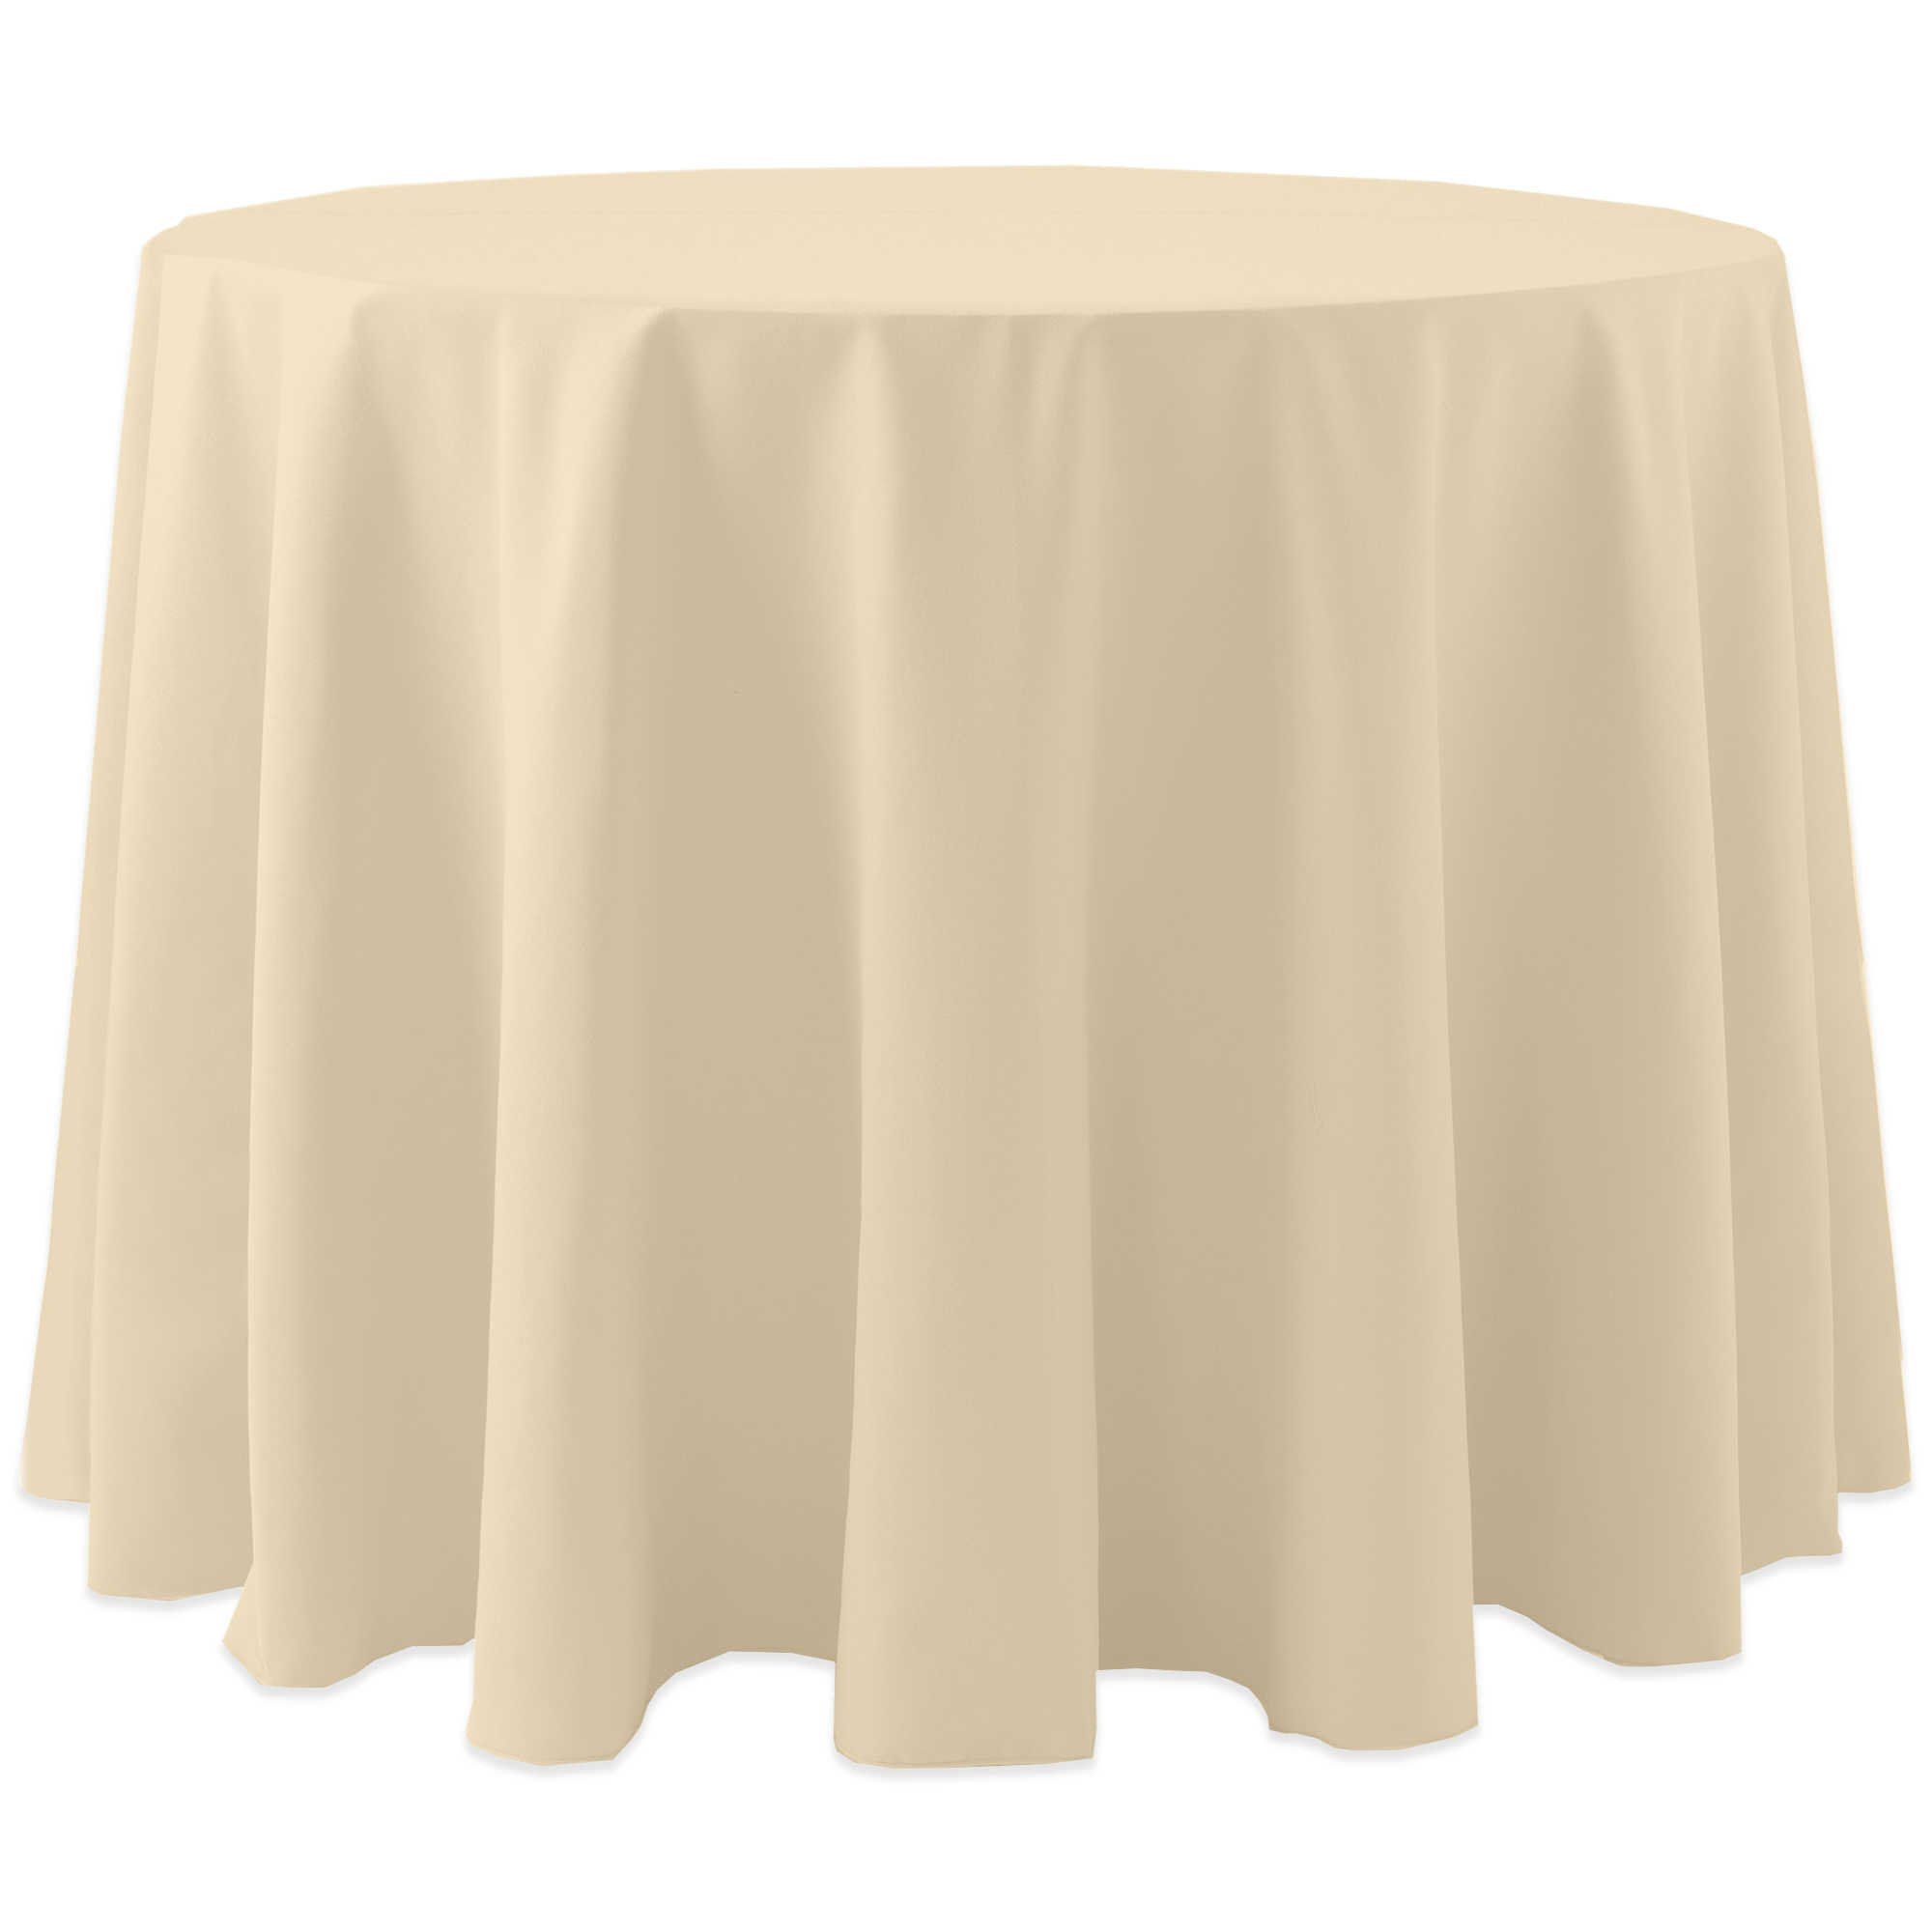 Ultimate Textile (10 Pack) Cotton-feel 72-Inch Round Tablecloth - for Wedding and Banquet, Hotel or Home Fine Dining use, Tan Beige by Ultimate Textile (Image #1)